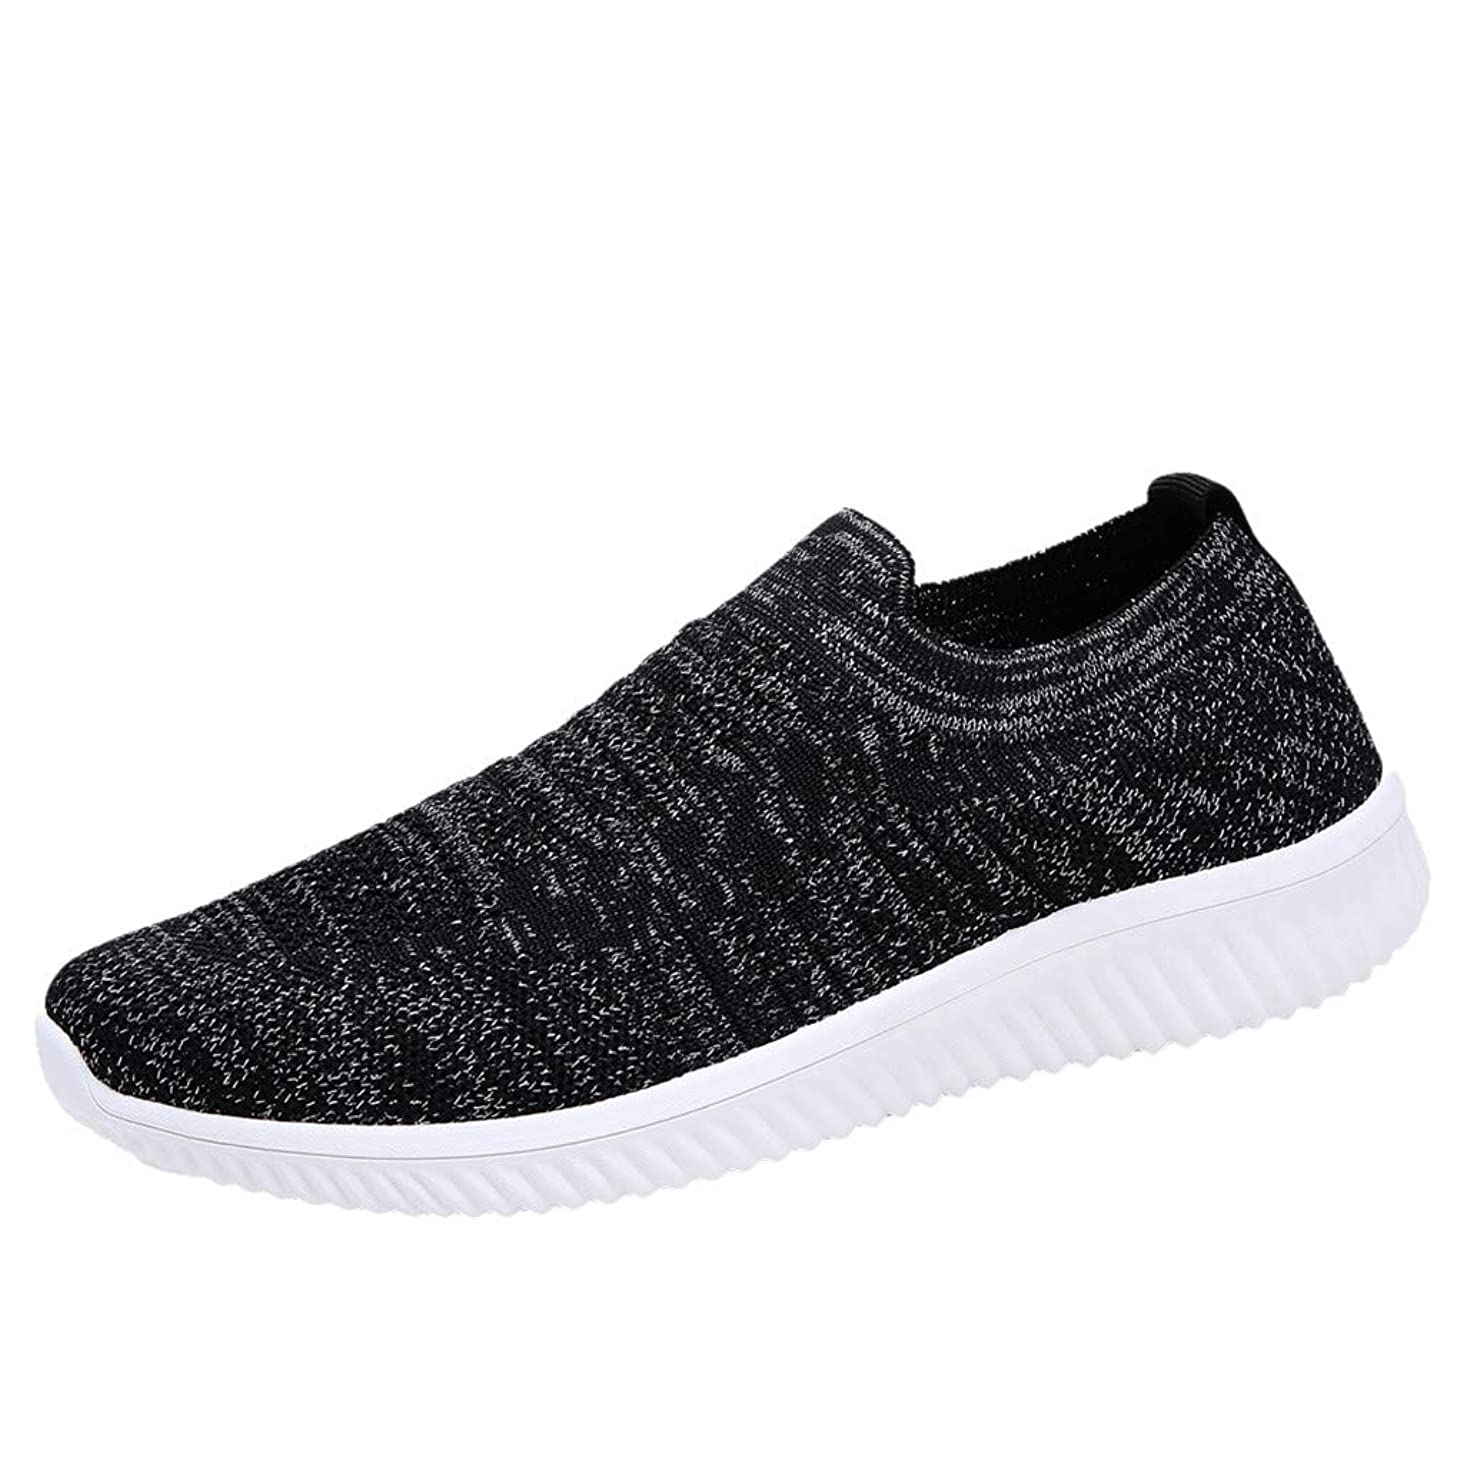 Toimothcn Women's Mesh Sneakers Slip On Cozy Breathable Athletic Running Walking Shoes